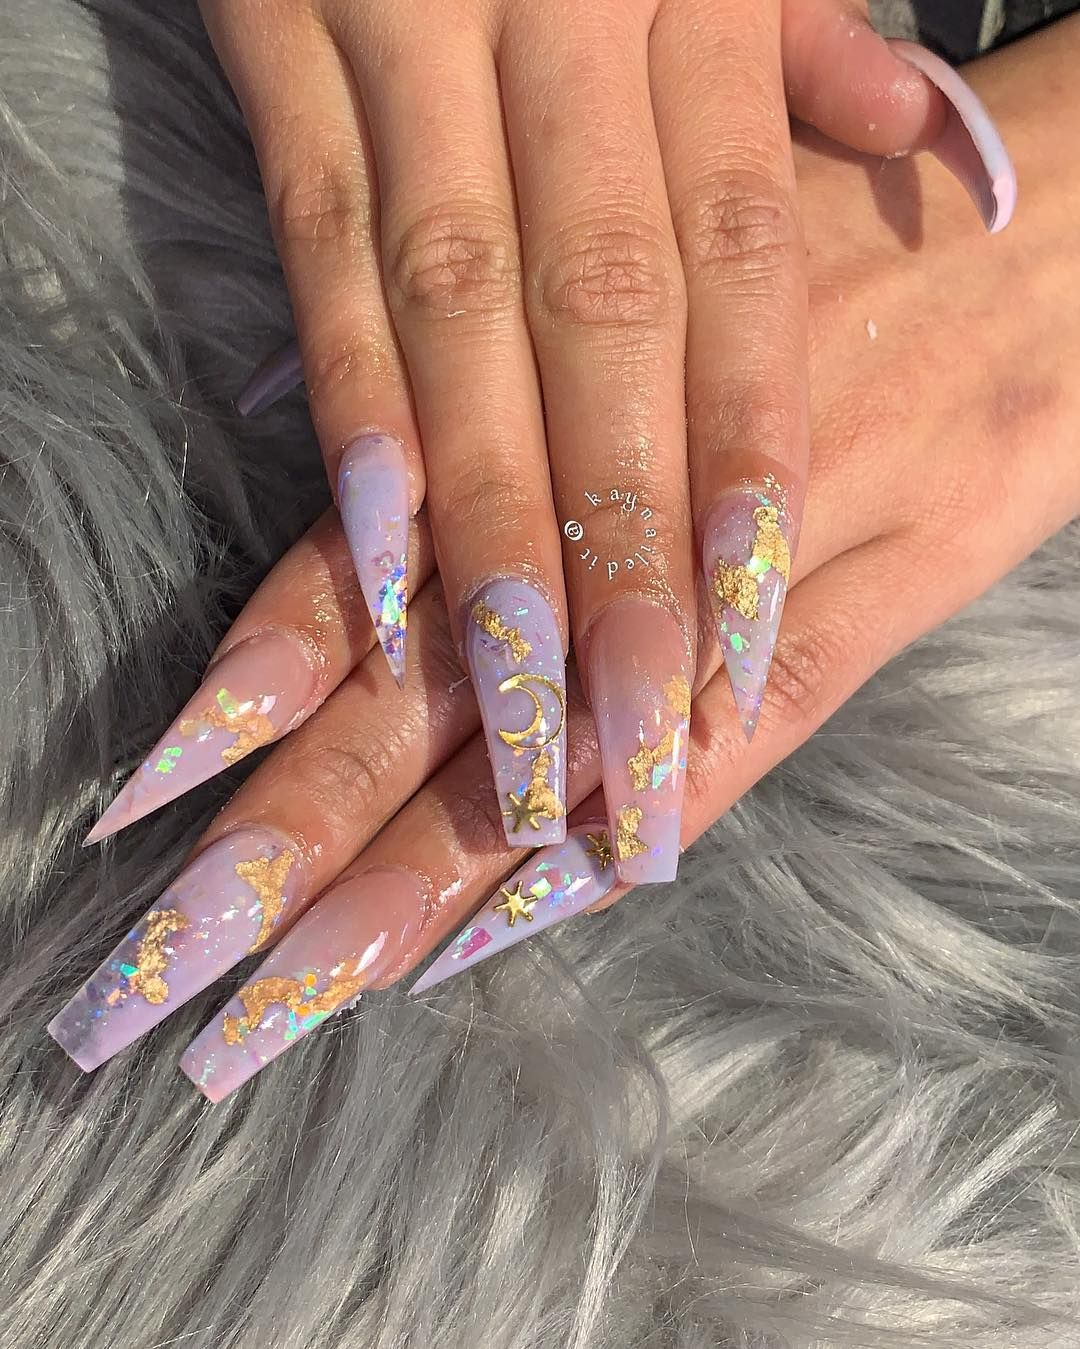 Nailsbyjohenly On Instagram This Butterfly Set Nailsbyjohenly Nails Nailfie Nailsofinstagr Nails Simple Acrylic Nails Colored Acrylic Nails